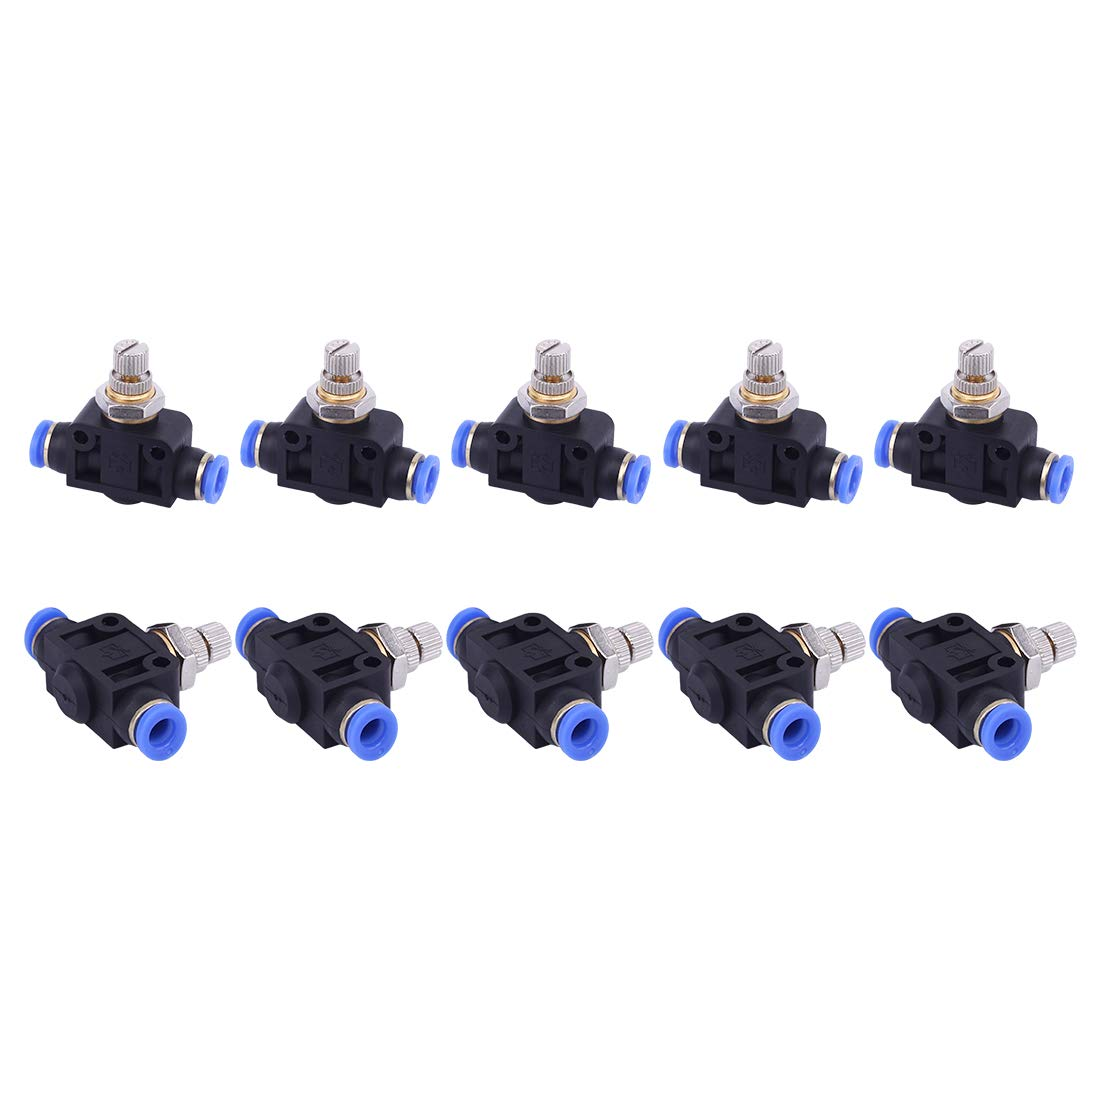 "SNS SPA1/4 Union Straight Speed Controller - 1/4"" Tube OD Air Flow Control Valve with Push-to-Connect Fitting(10 PCS)"